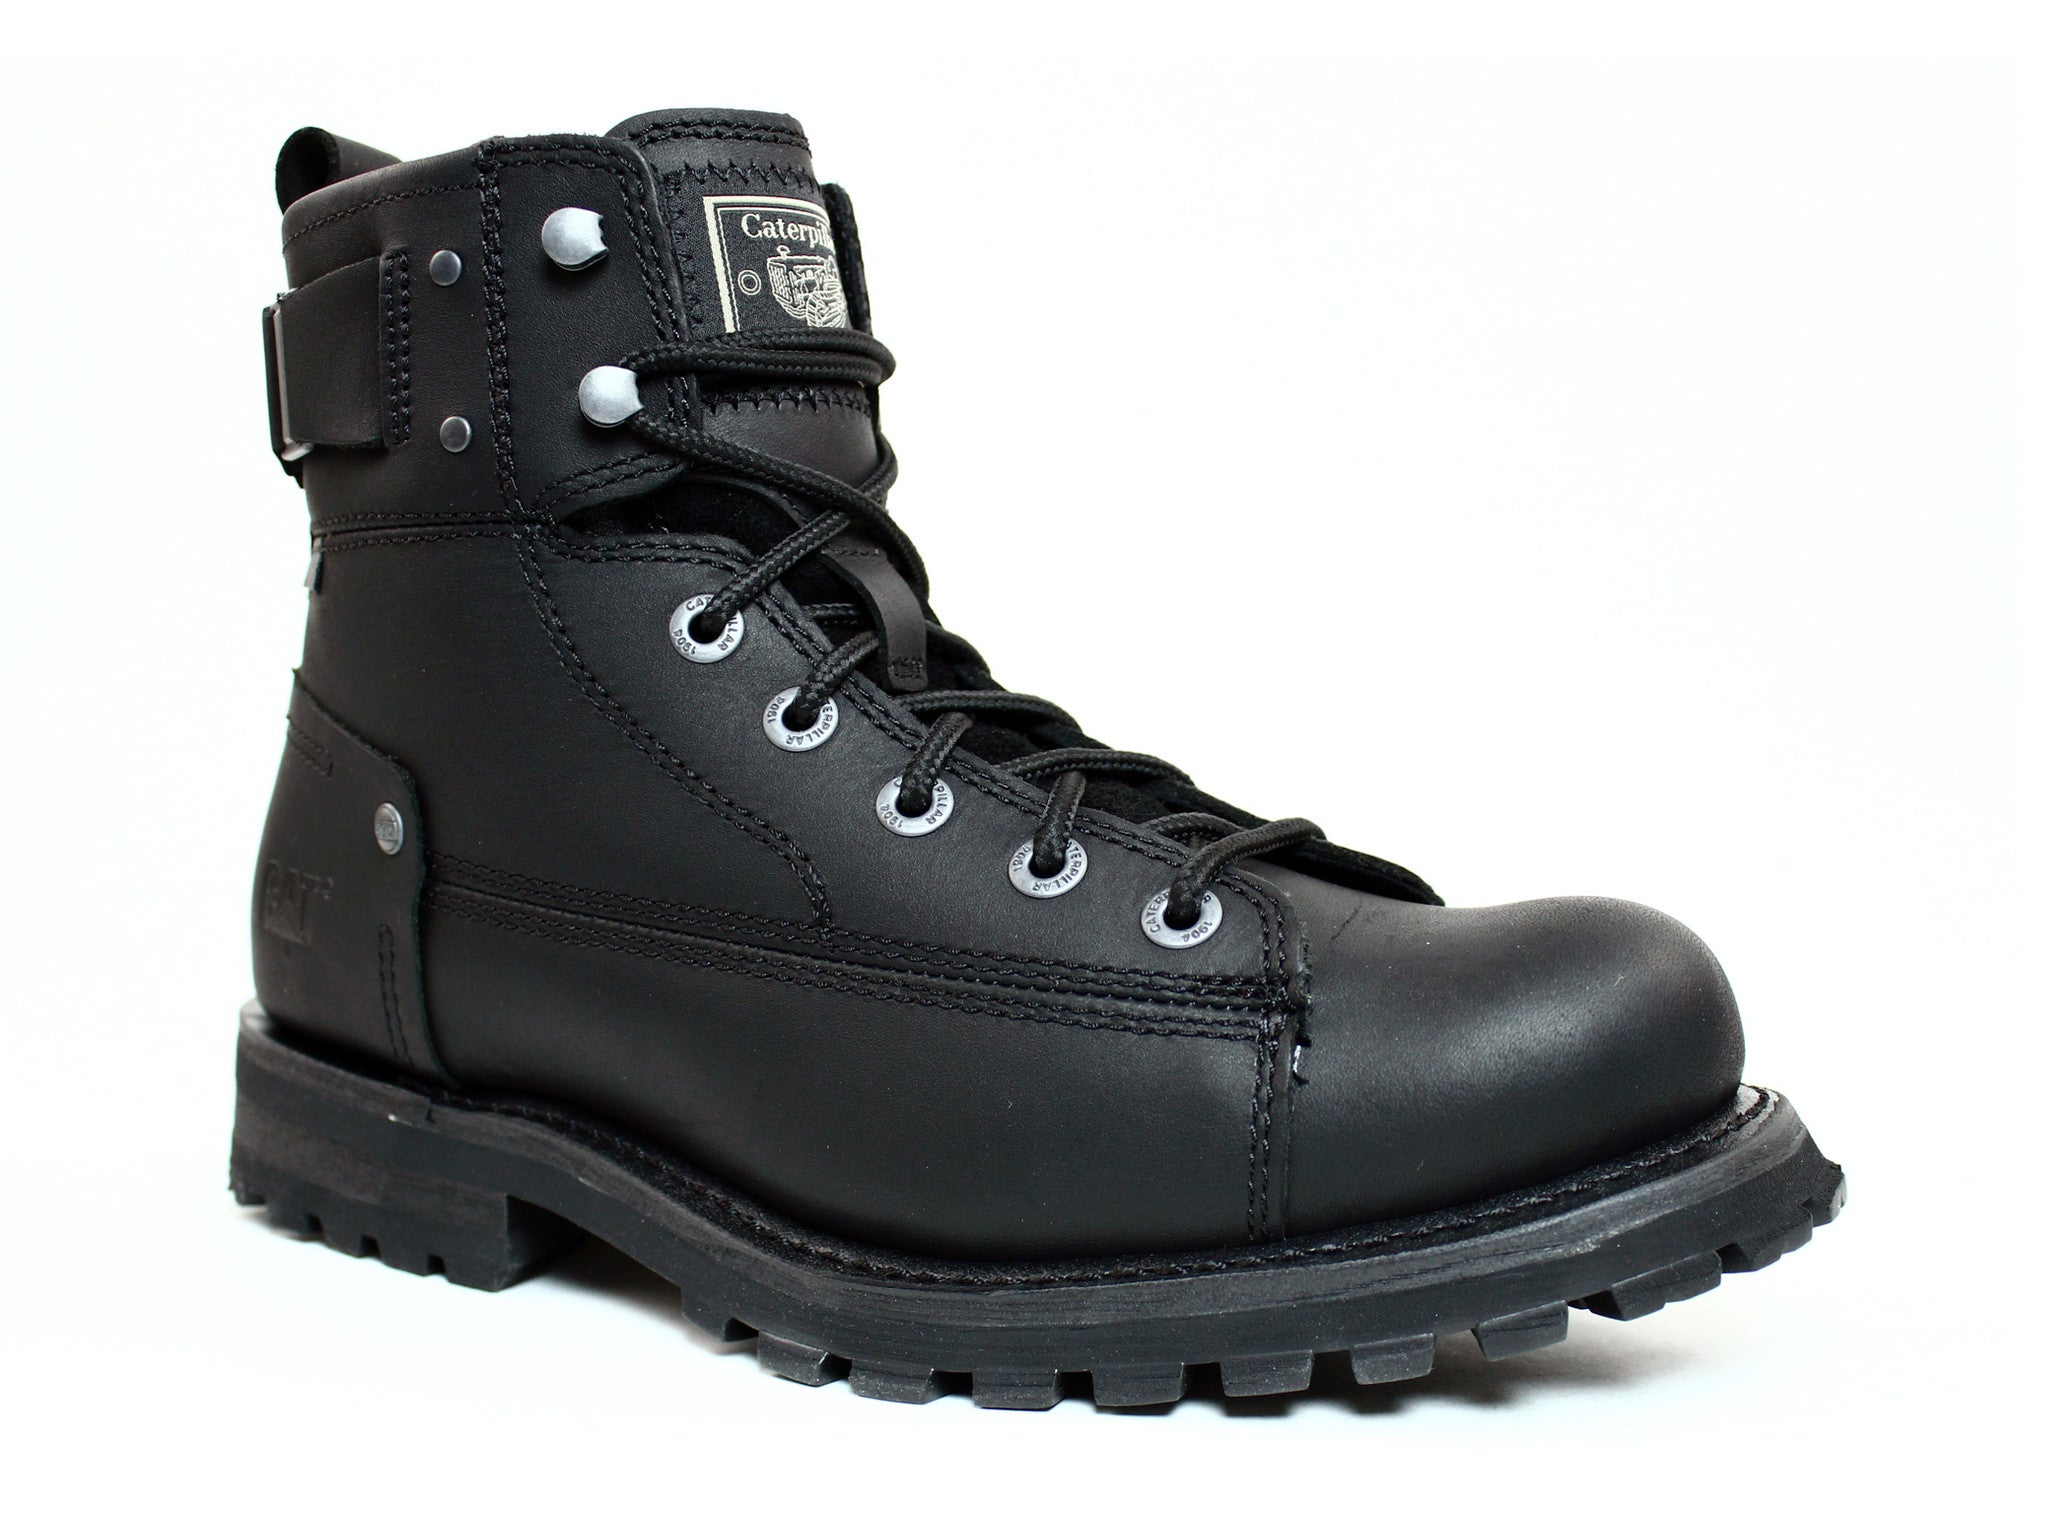 Casual Black Leather Boots